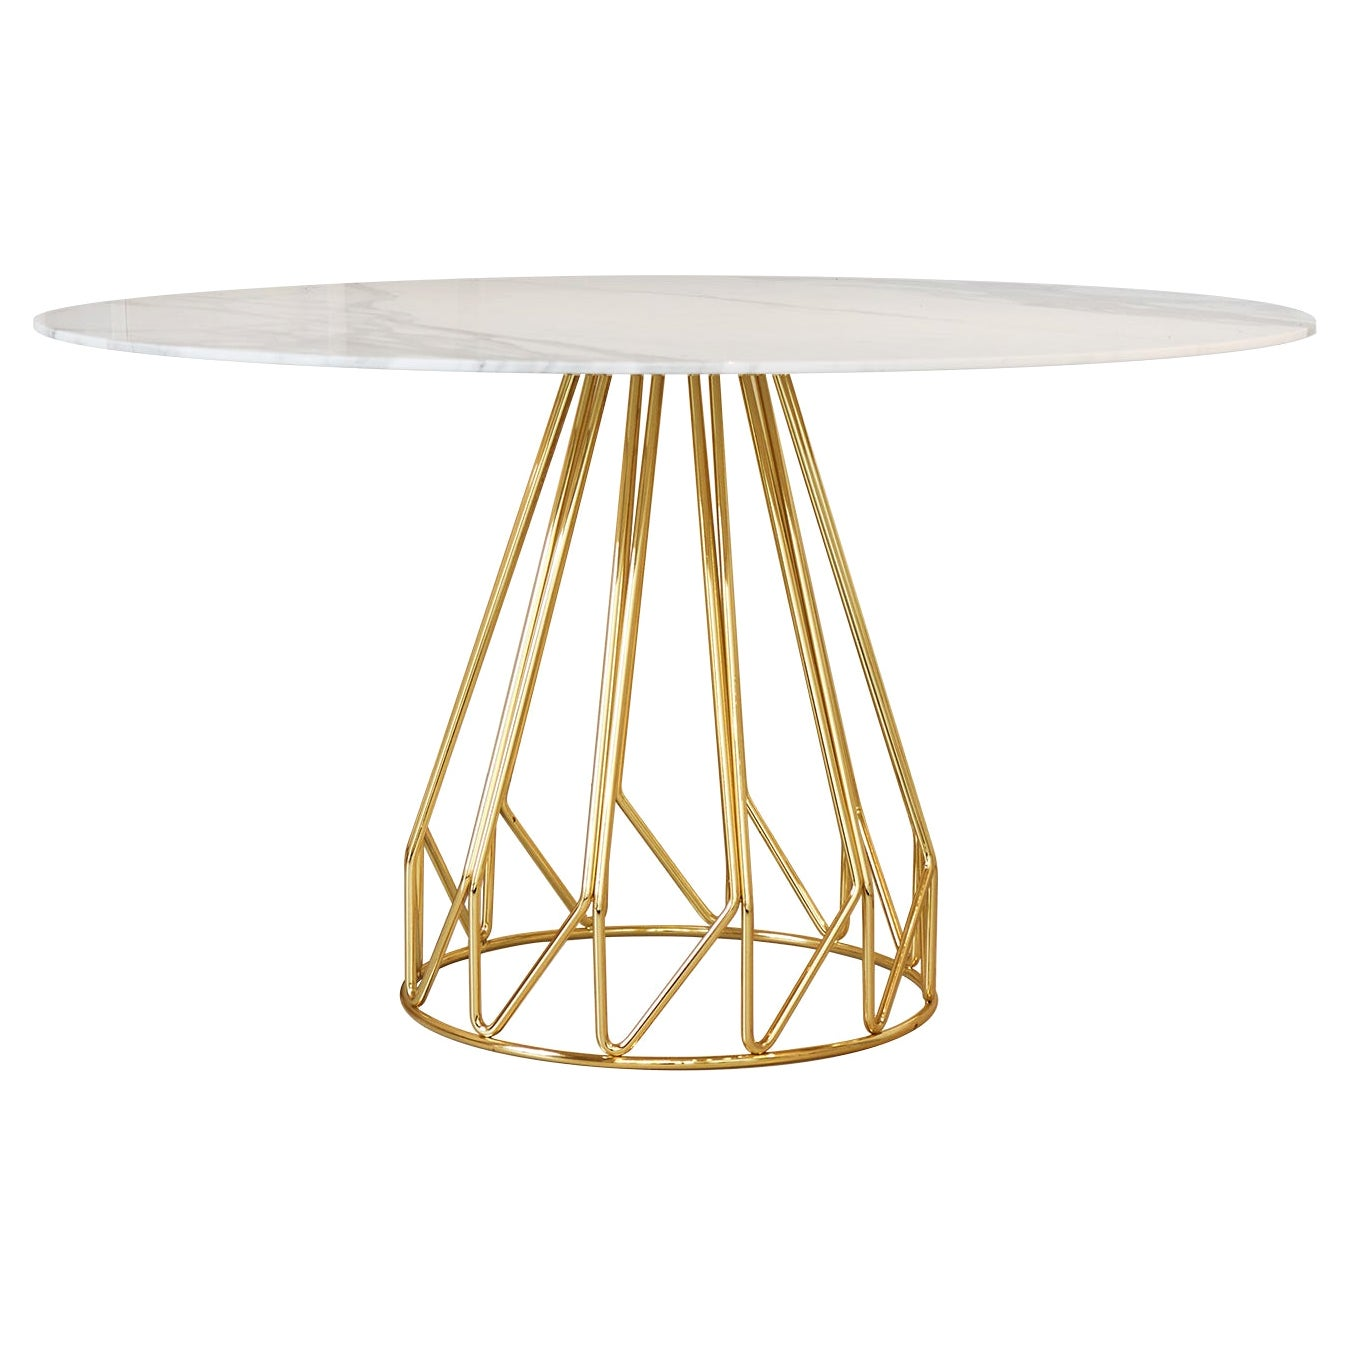 Contemporary Minimalist Table Gold, Carrara Calacatta Made in Italy by LapiegaWD